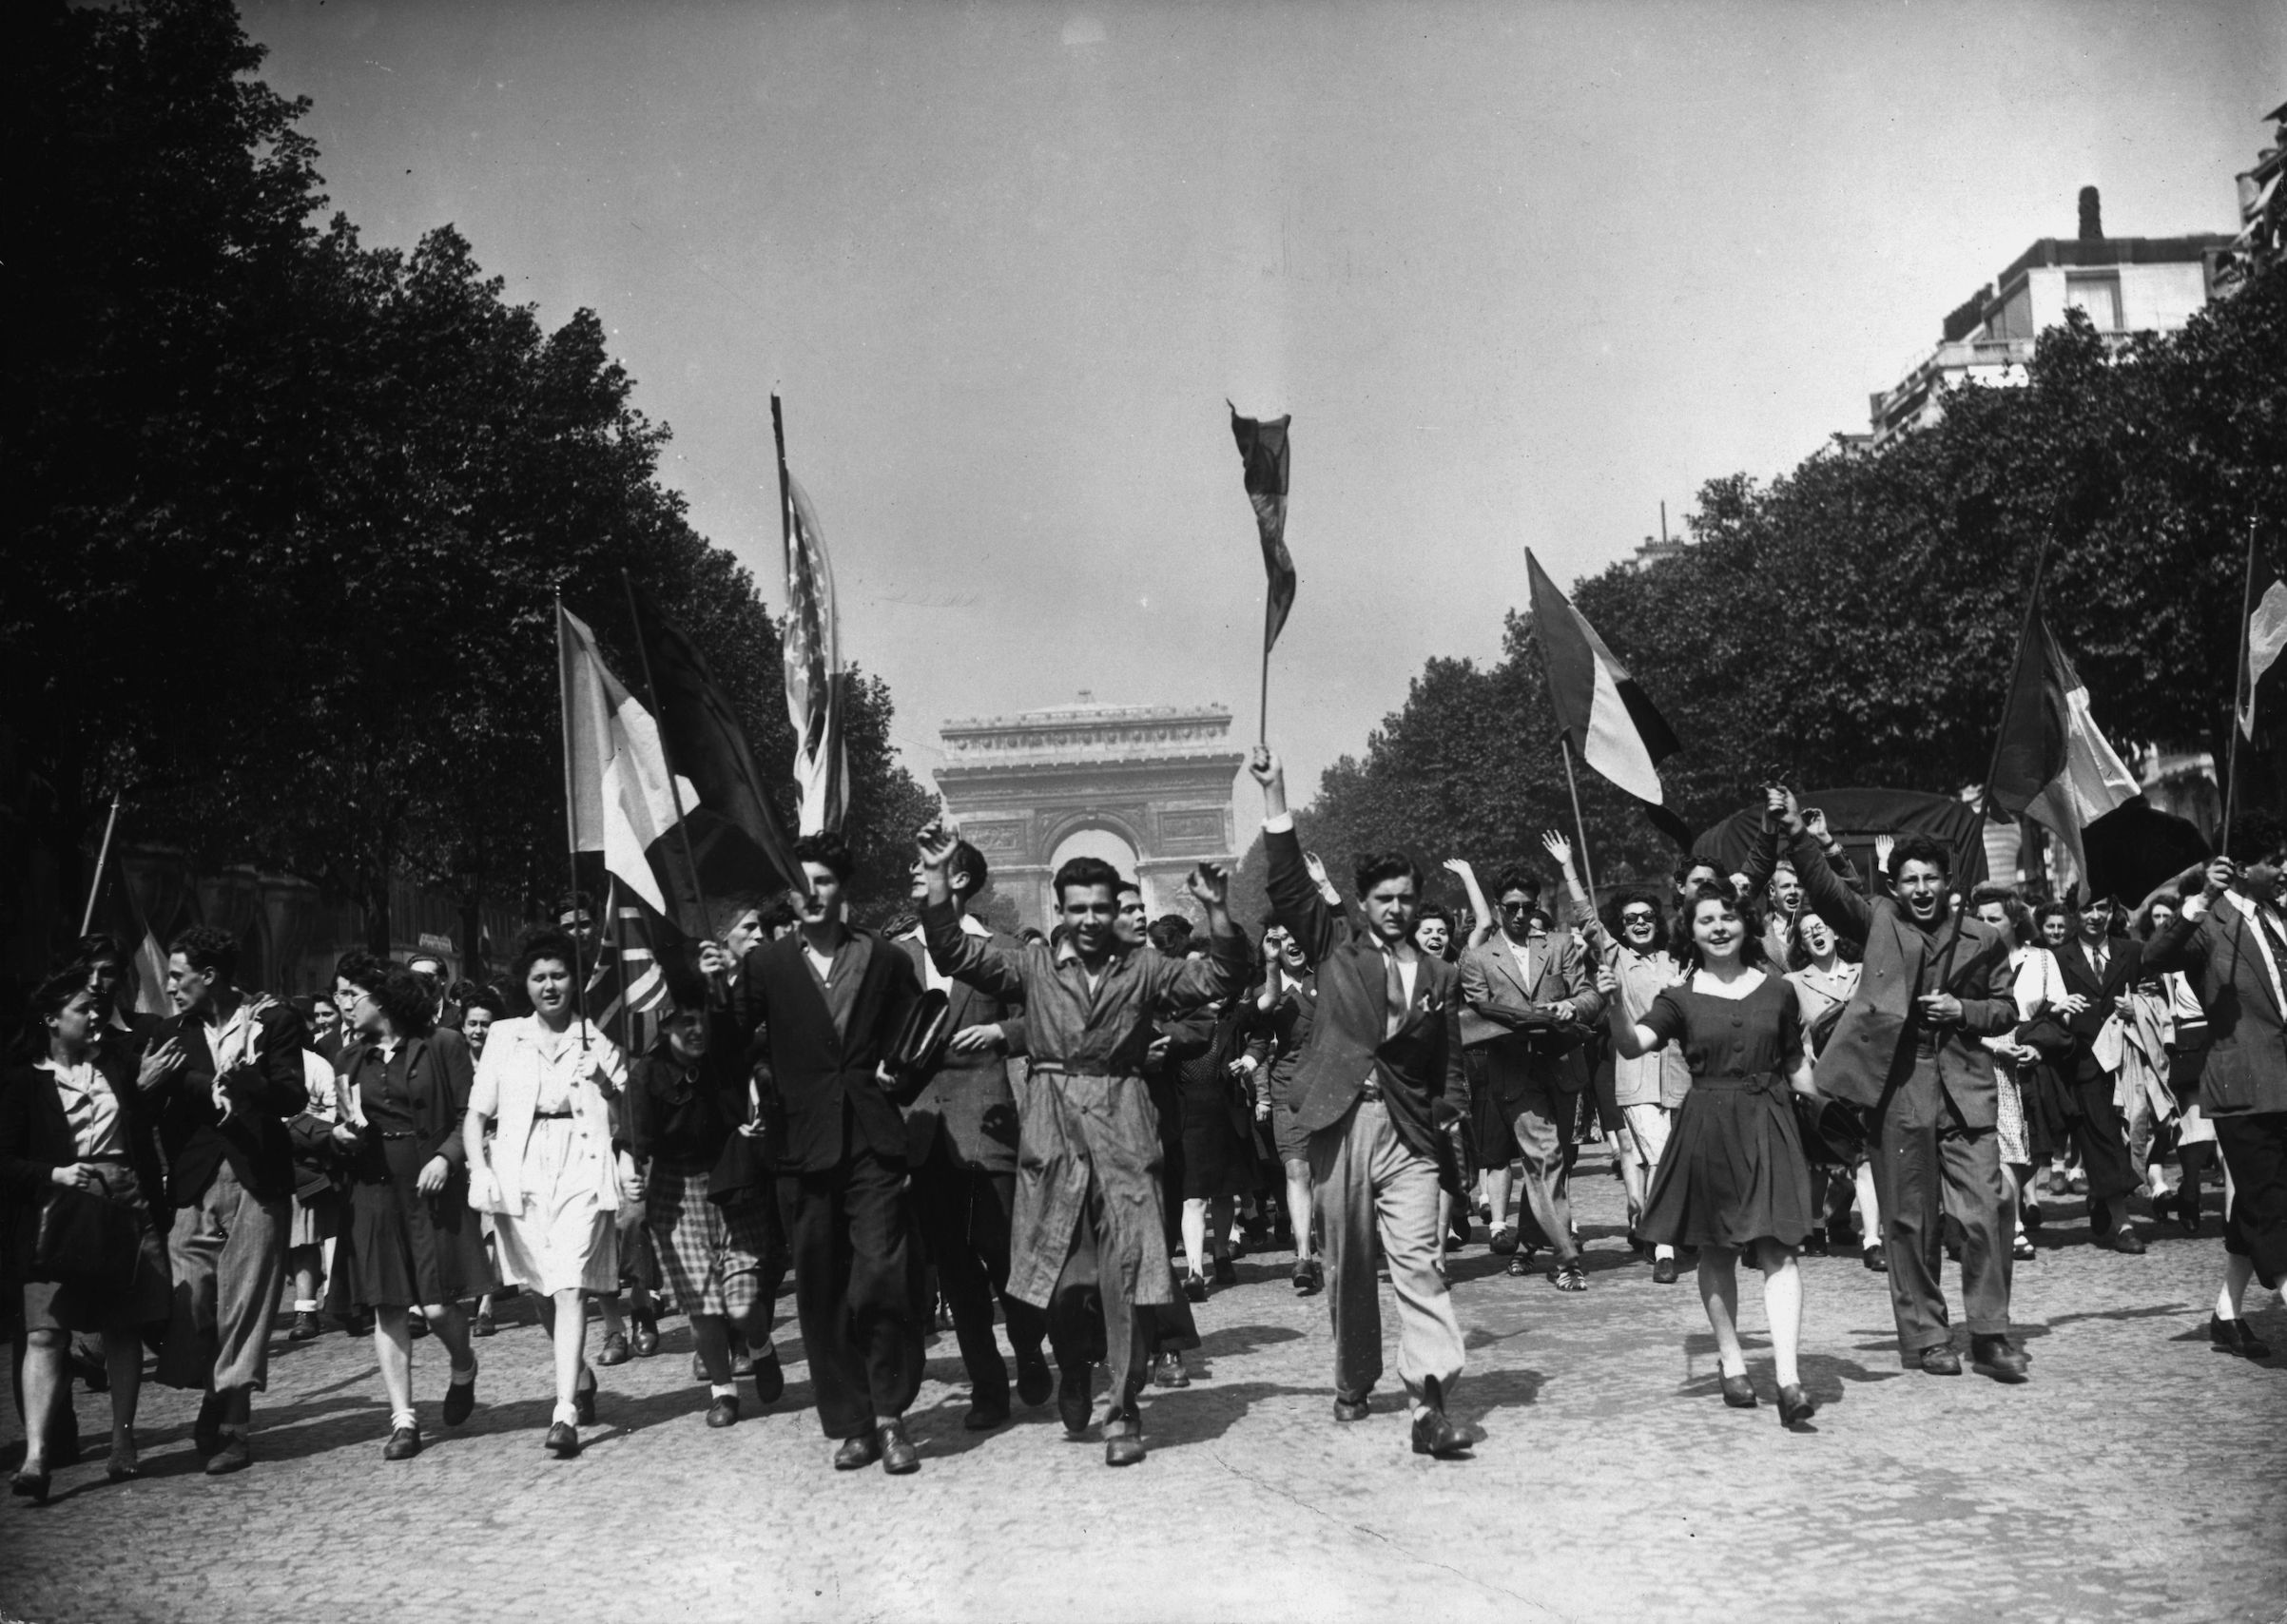 Crowds on the Champs-Élysées celebrate Victory in Europe at the end of World War II with a joyful procession on May 8, 1945